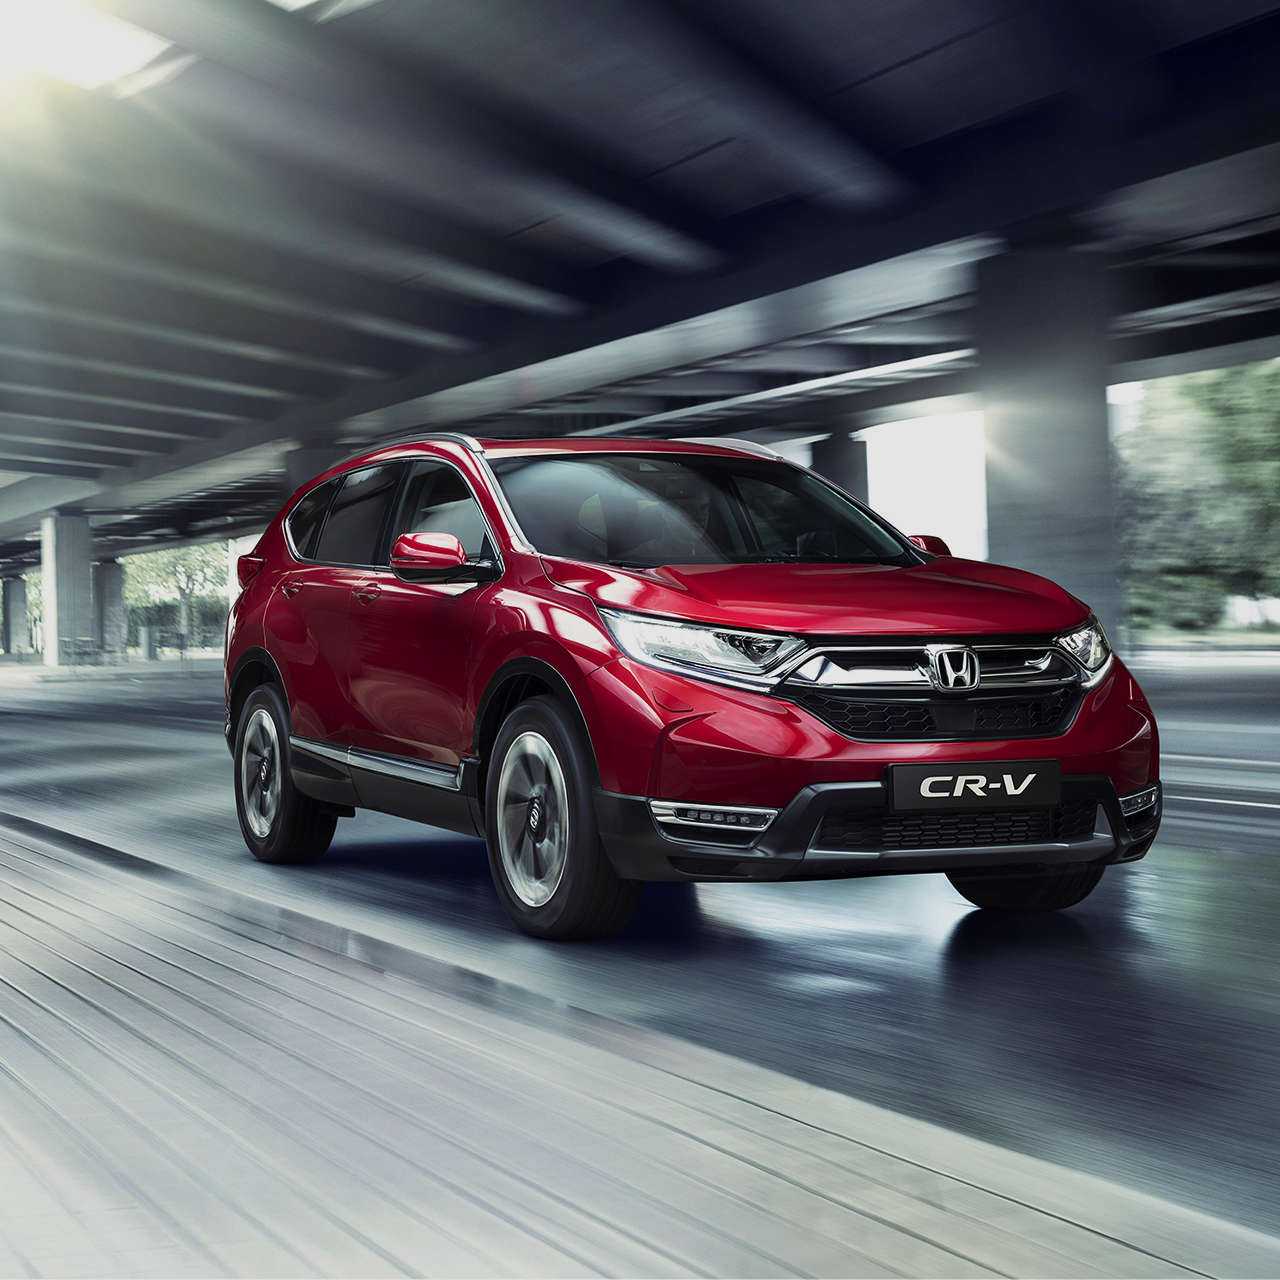 All New Cr V The Redesigned 4x4 Suv Honda Uk 5 Engine Parts Diagram Evolved In Every Way